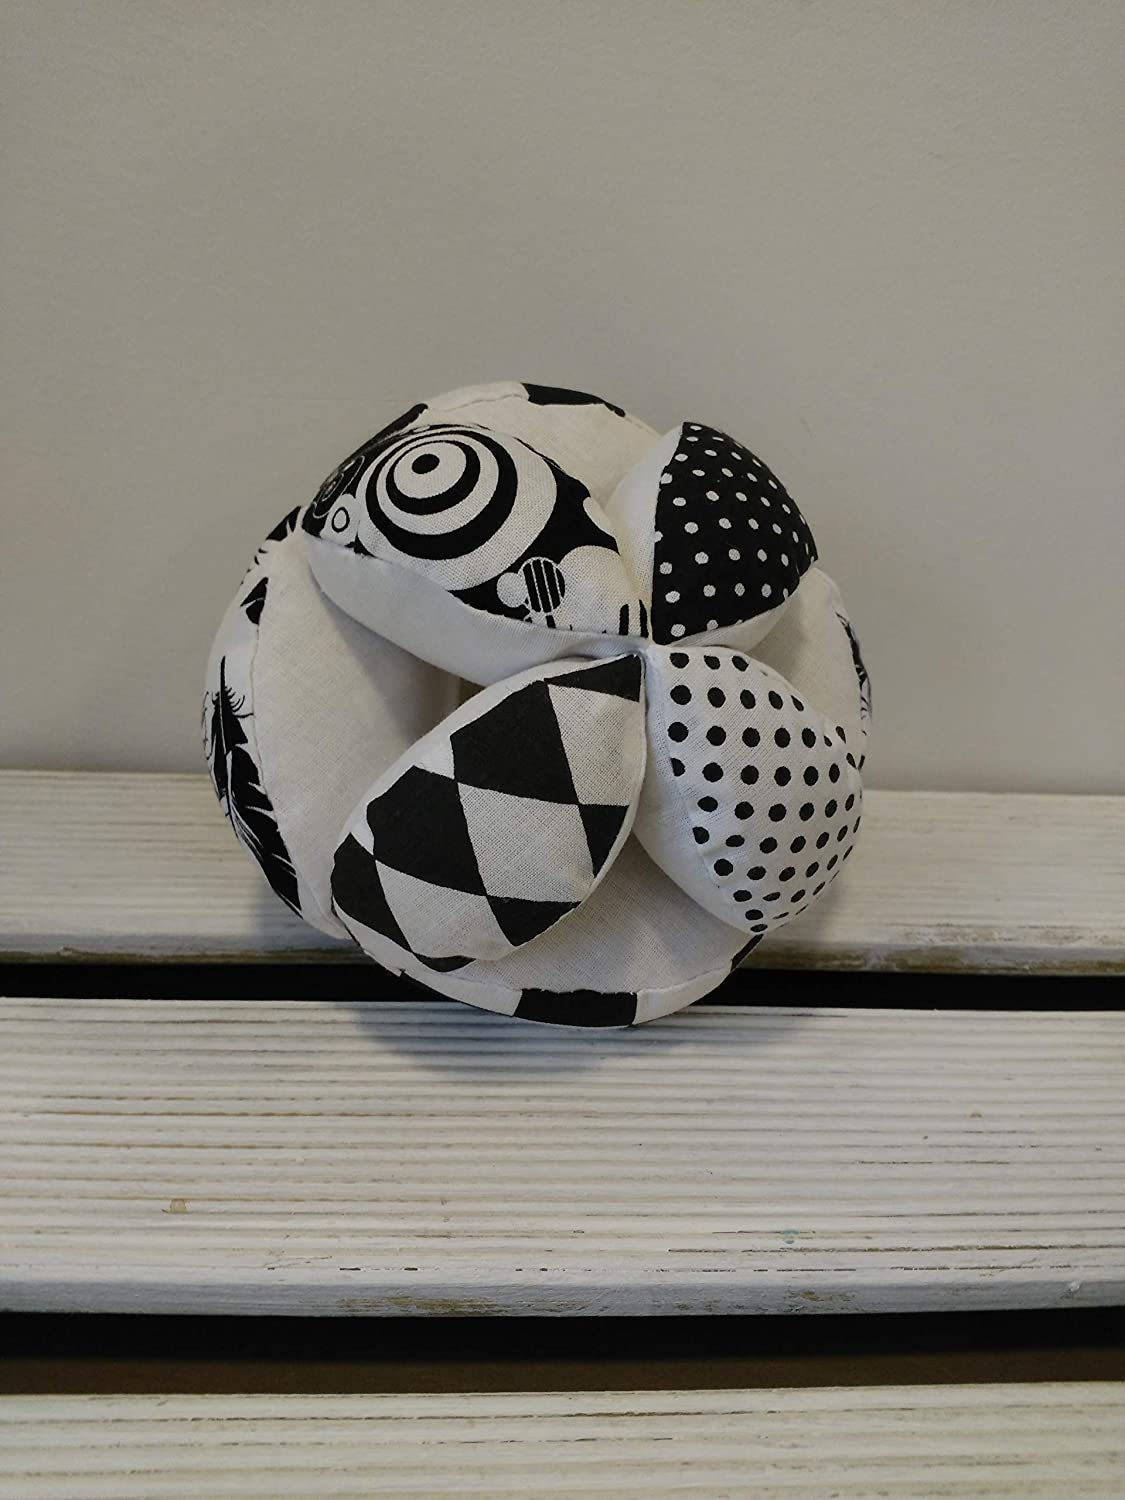 Monochrome puzzle ball, Montessori baby toy